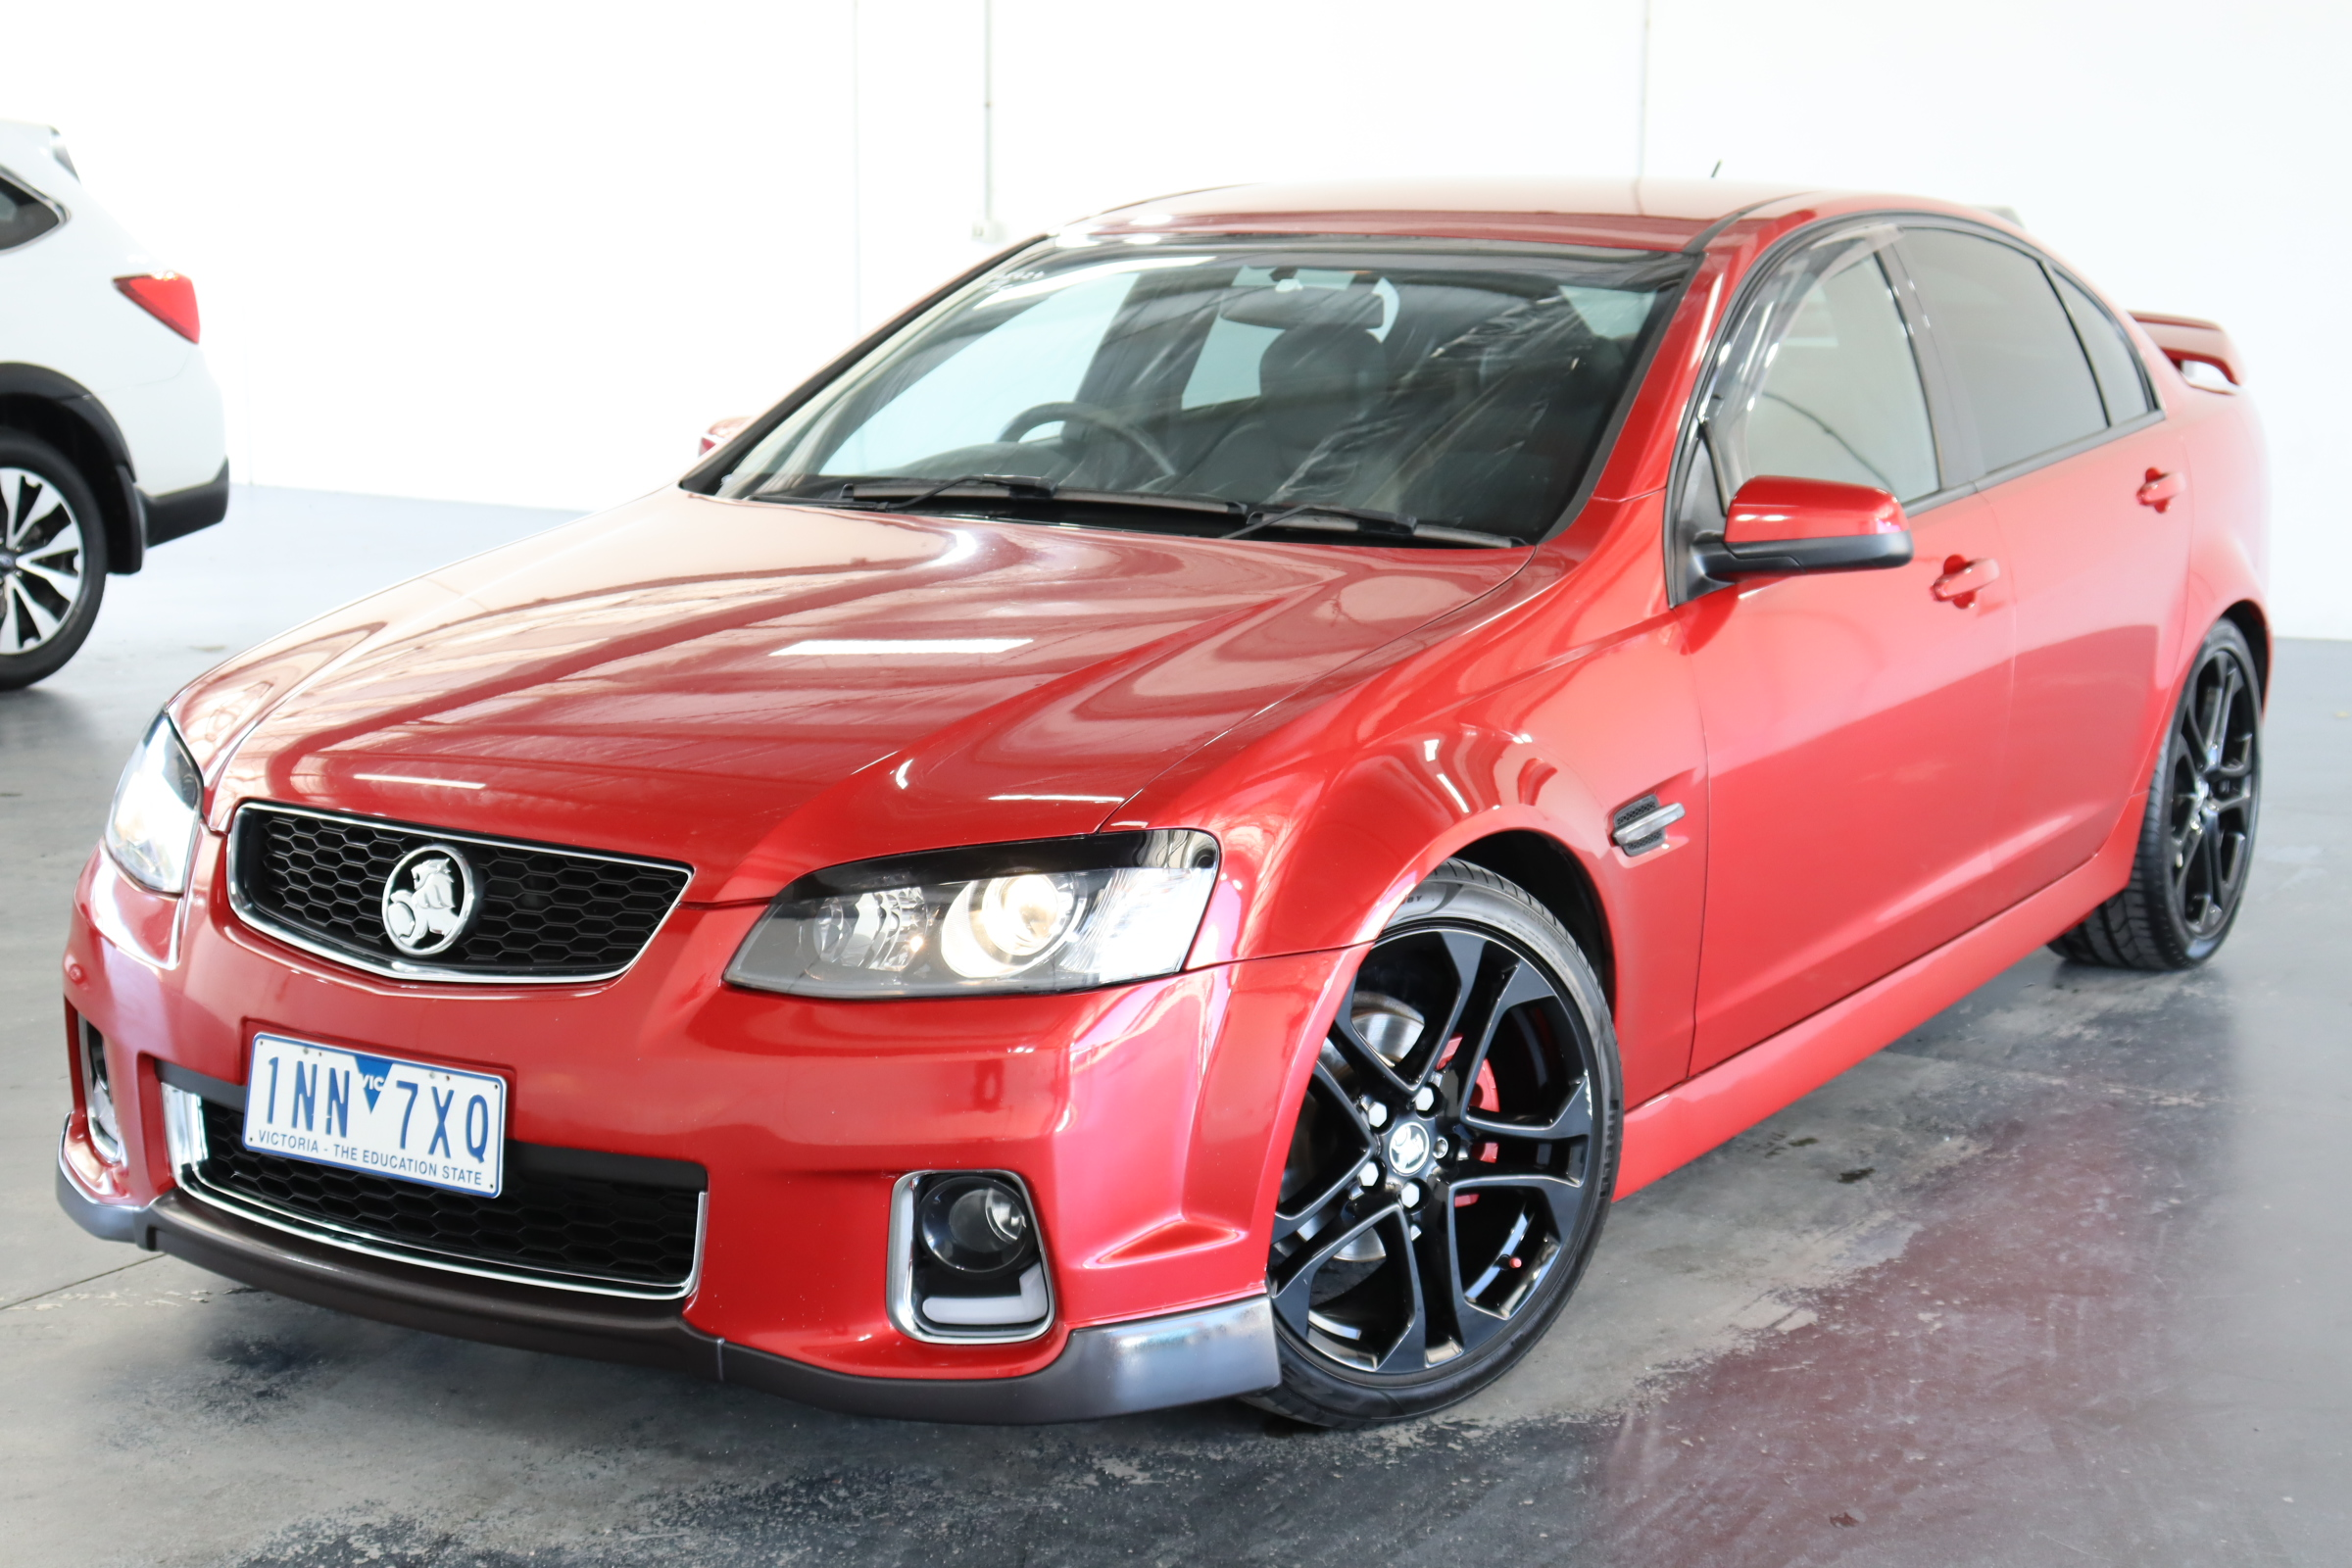 2011 Holden Commodore SV6 VE Automatic Sedan (WOVR)